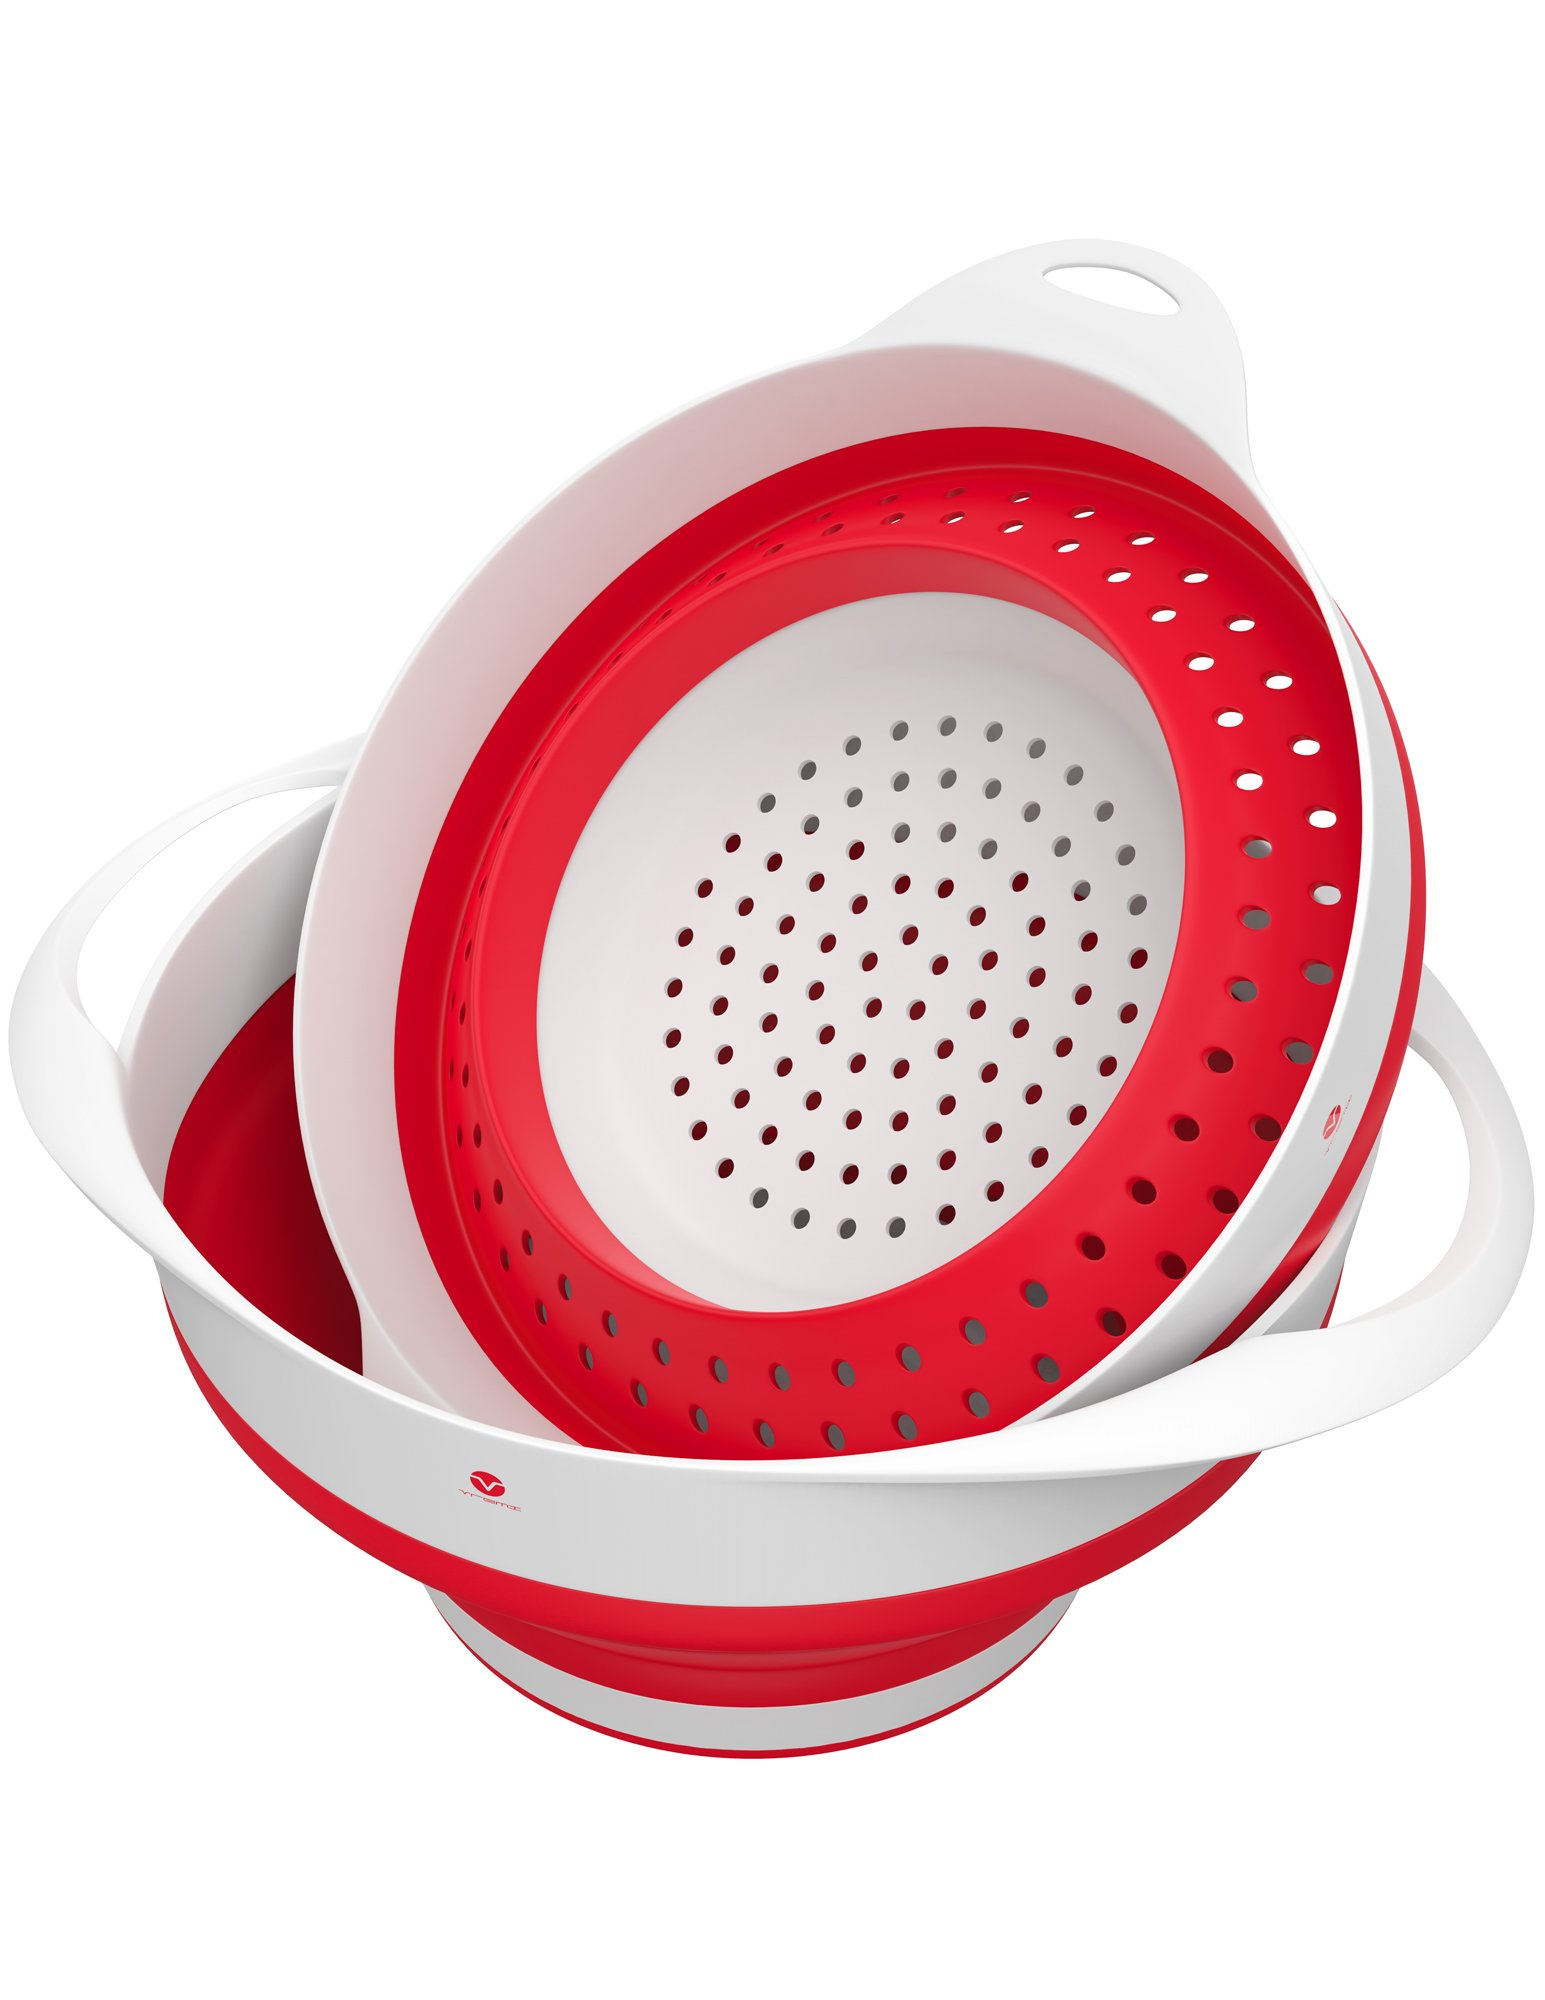 Vremi Collapsible Colander and Bowl Set - BPA Free Silicone Food Strainer - Red